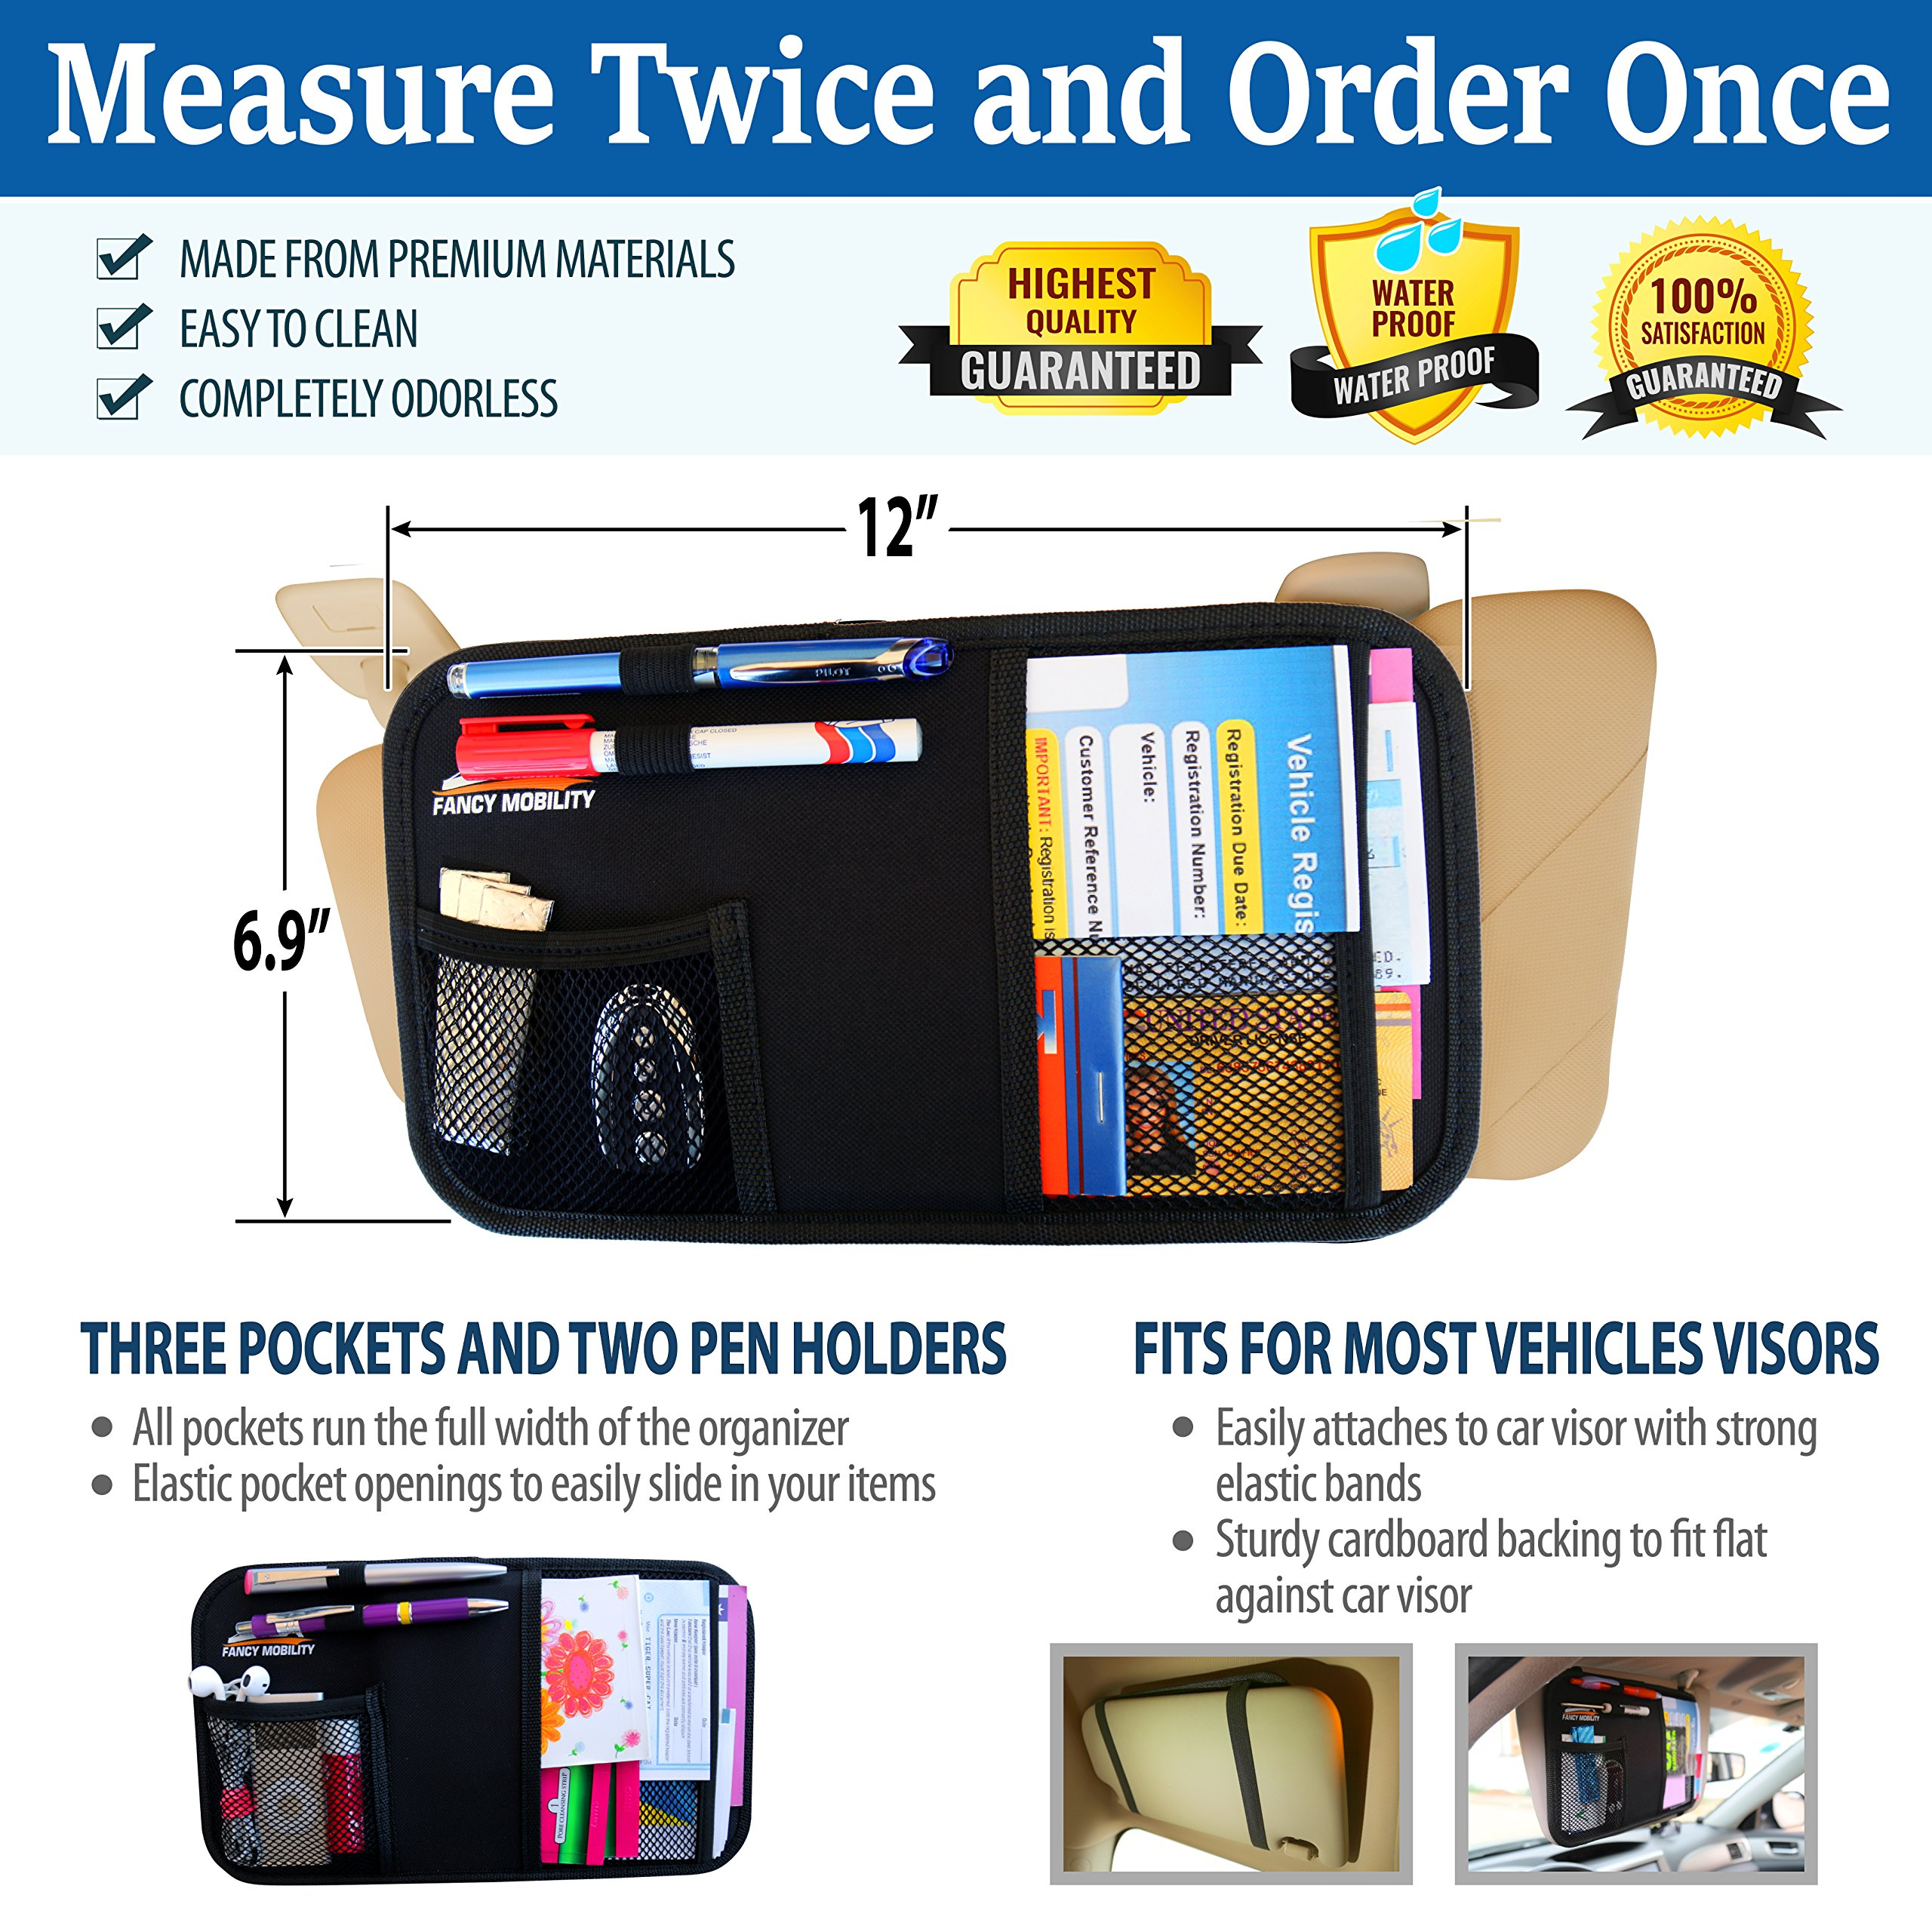 Fancy Mobility Car Sun Visor Organizer - Auto Accessories Document Holder - Car, Truck, SUV Registration & Insurance Storage Pouch - Road Trip Essentials Gift for Any Driver + 5Year Warranty (5 Pack) by Fancy Mobility (Image #3)